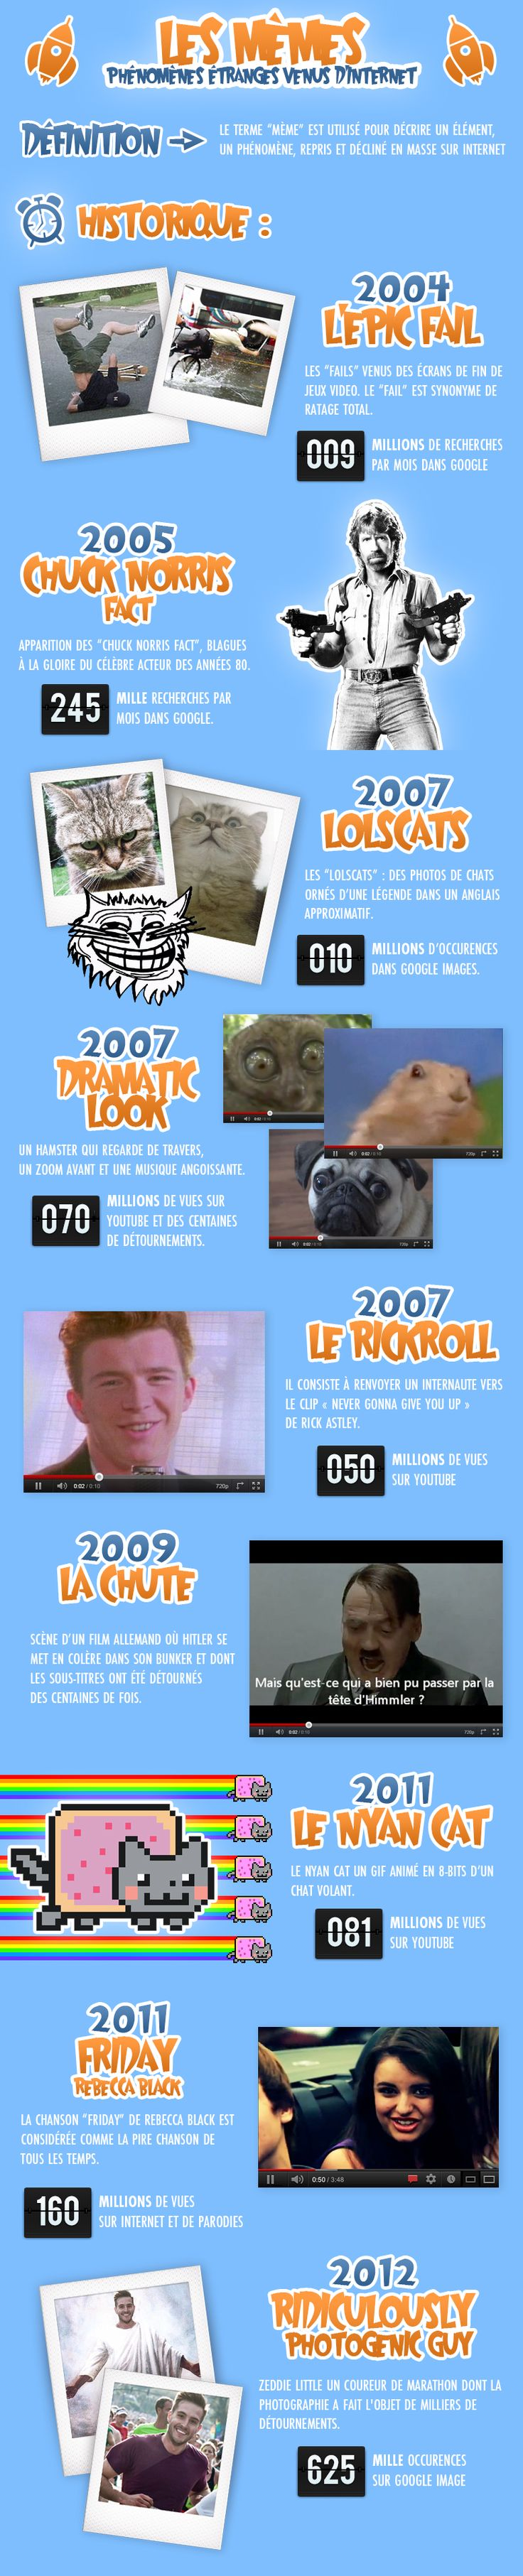 The history of the internet memes by nuwave marketing france visit our